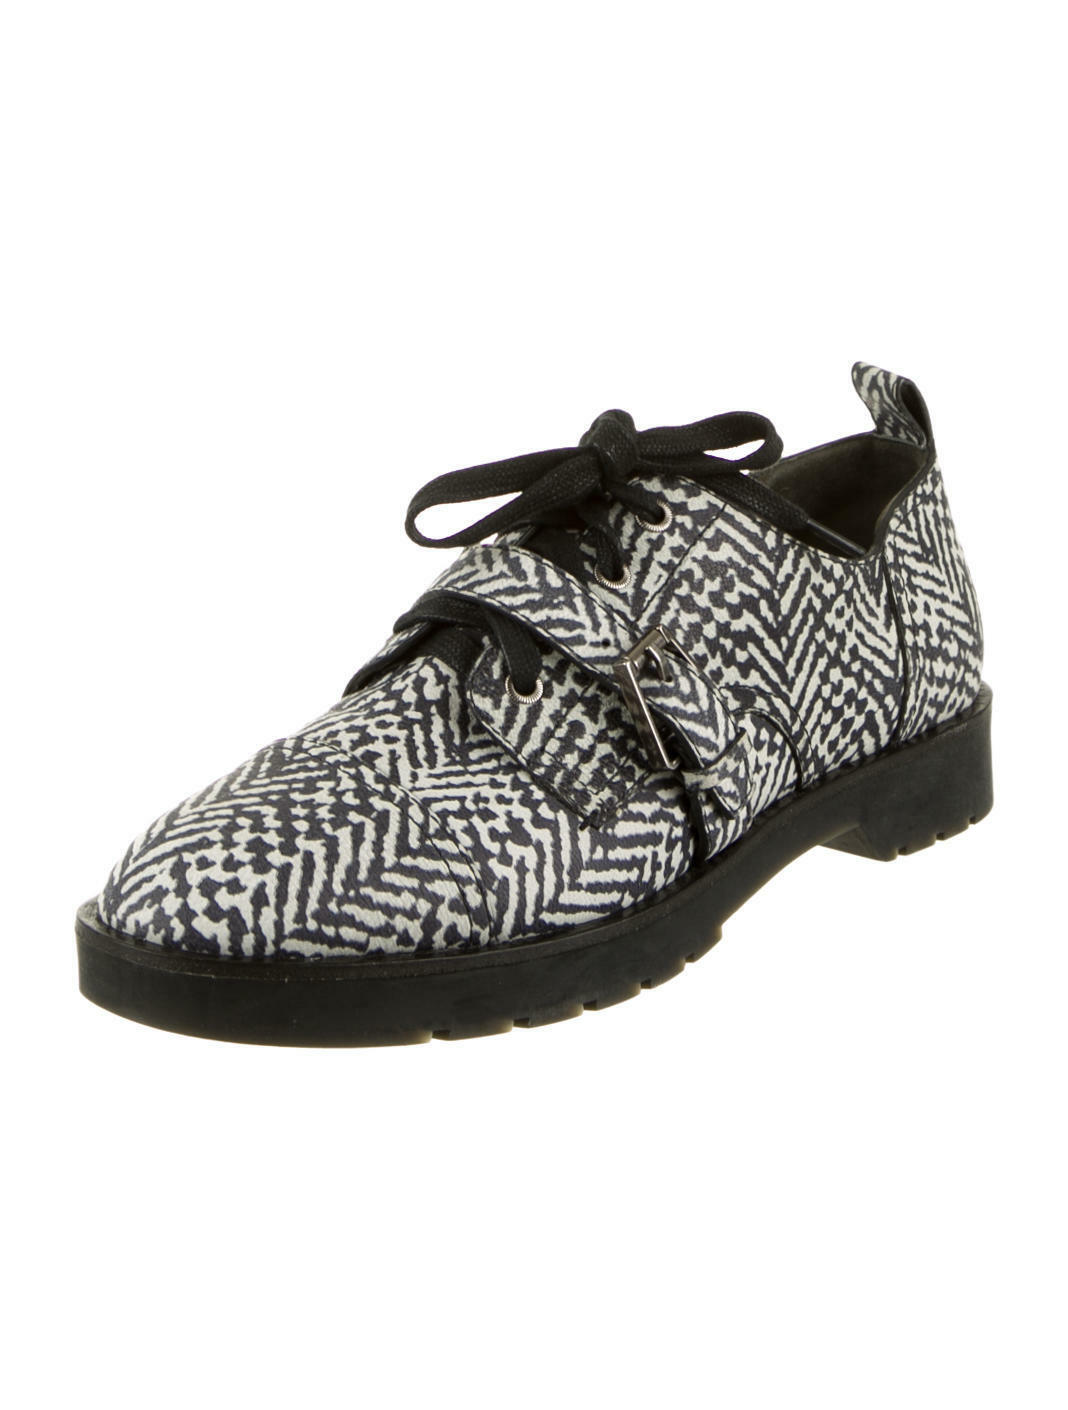 CRAZY COOL $695 NEW SOLD OUT RARE LOAFERS BY ALEXANDER WANG